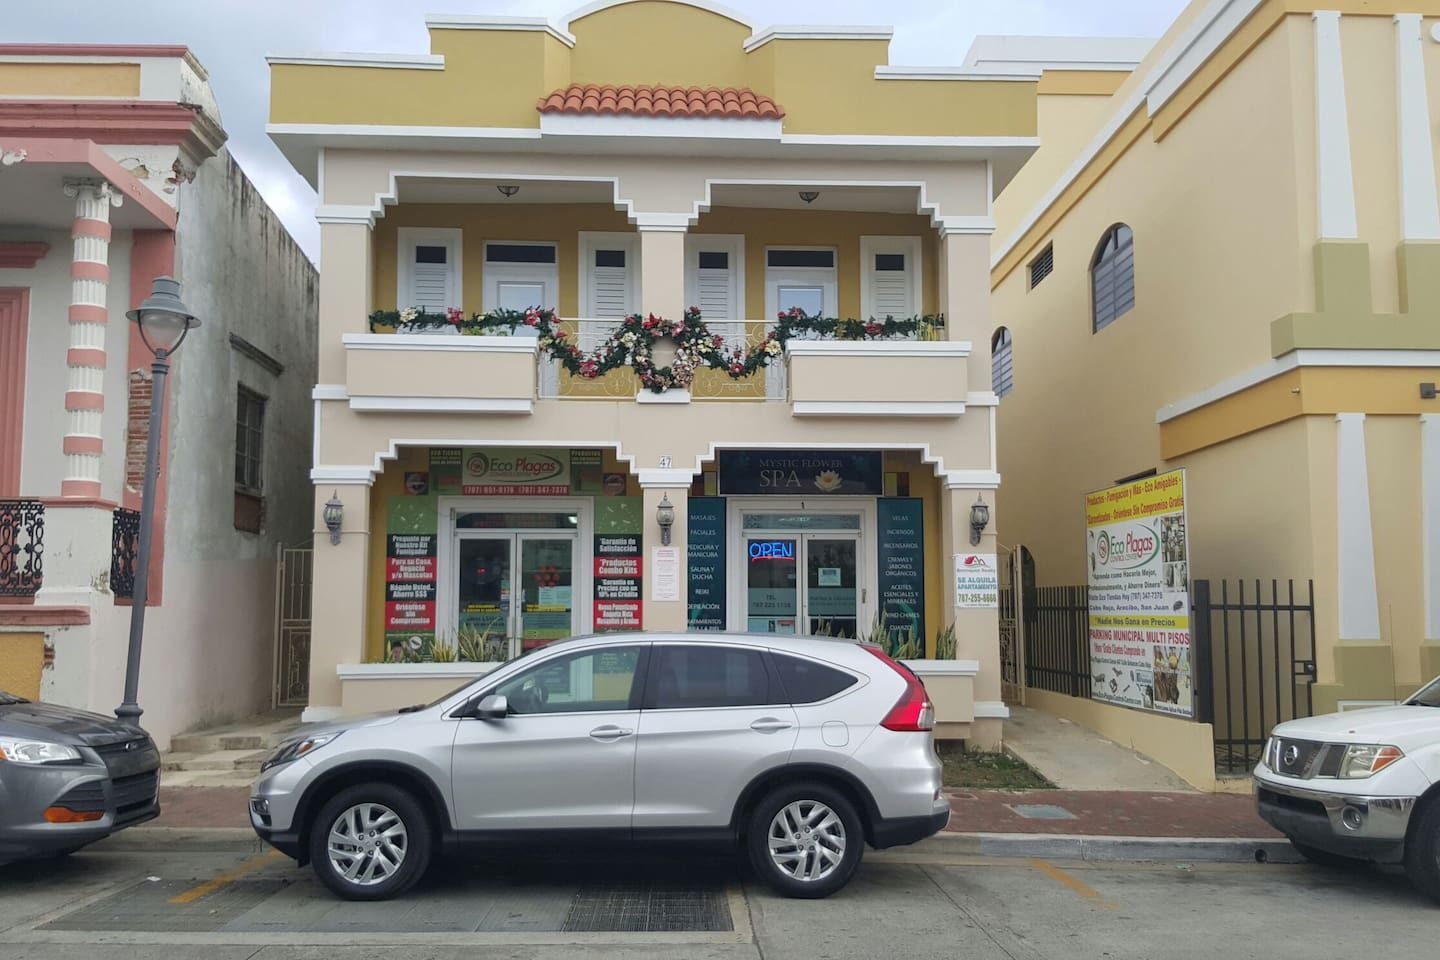 SPECIAL PRICE DEAL IN SEPT DO NOT MISS!! Free Wifi Internet Available In and Around Apartment. 1 Bedroom 1 Bath plus Kitchen and Living Room Entertaiment TV Area.